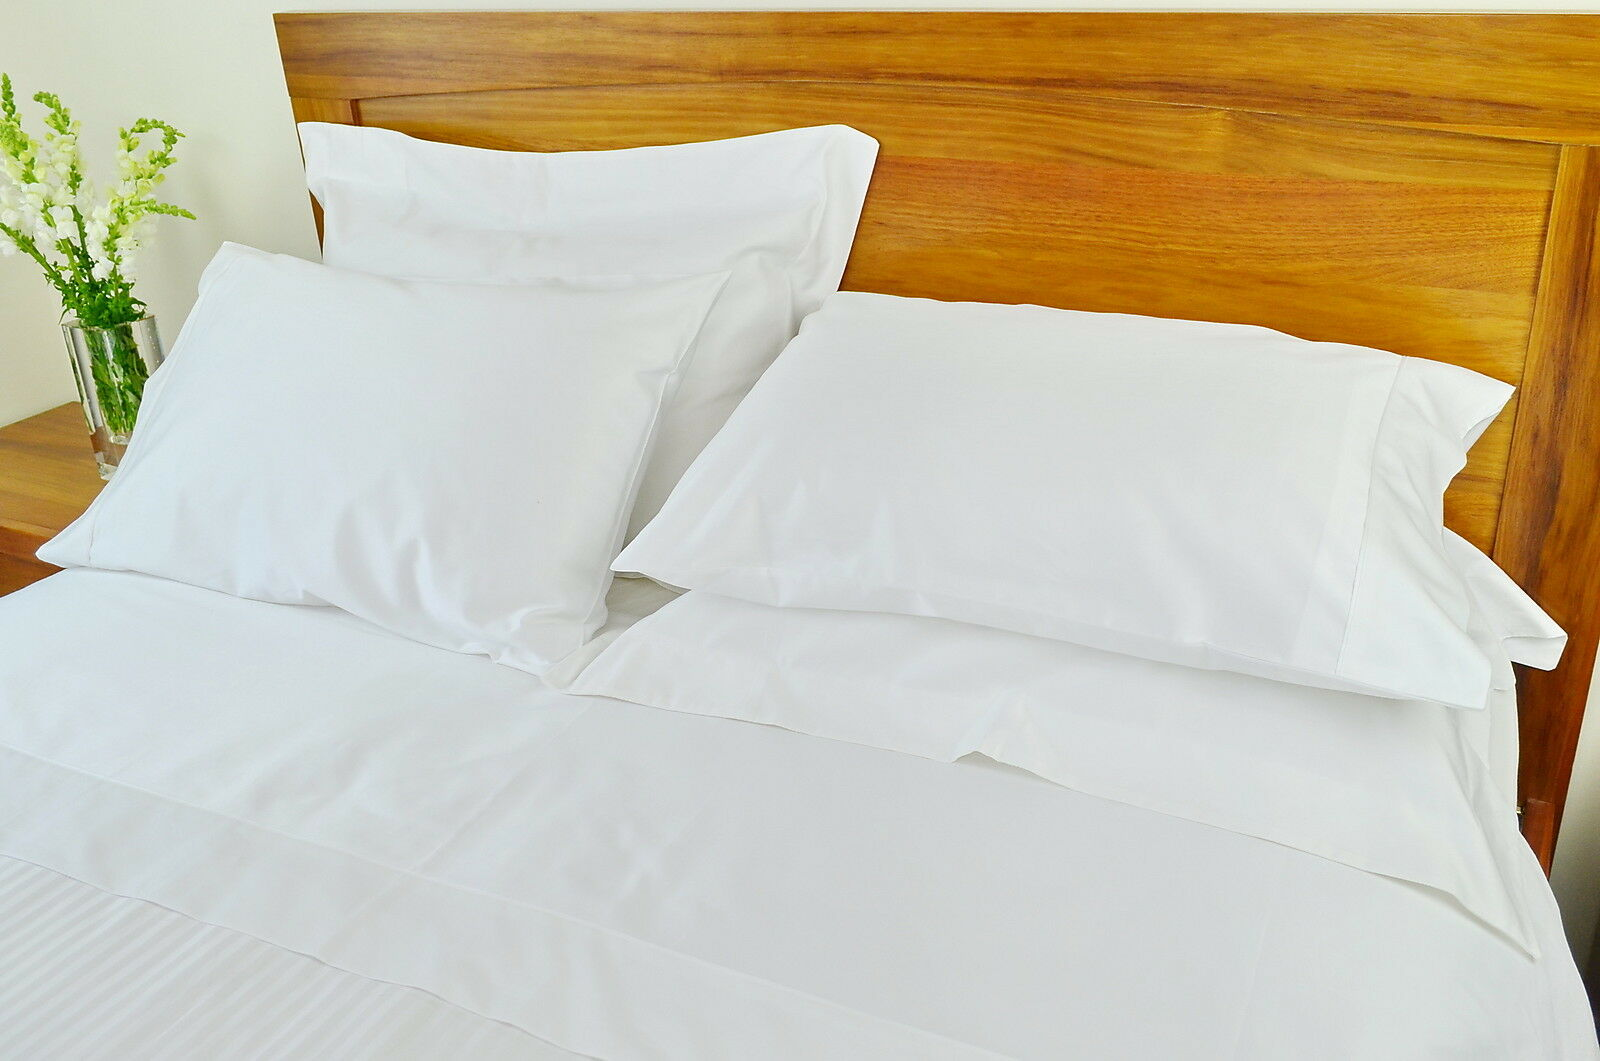 Queen Bed Fitted Sheet 1000TC 10cm2 Pure Cotton Plain Weiß